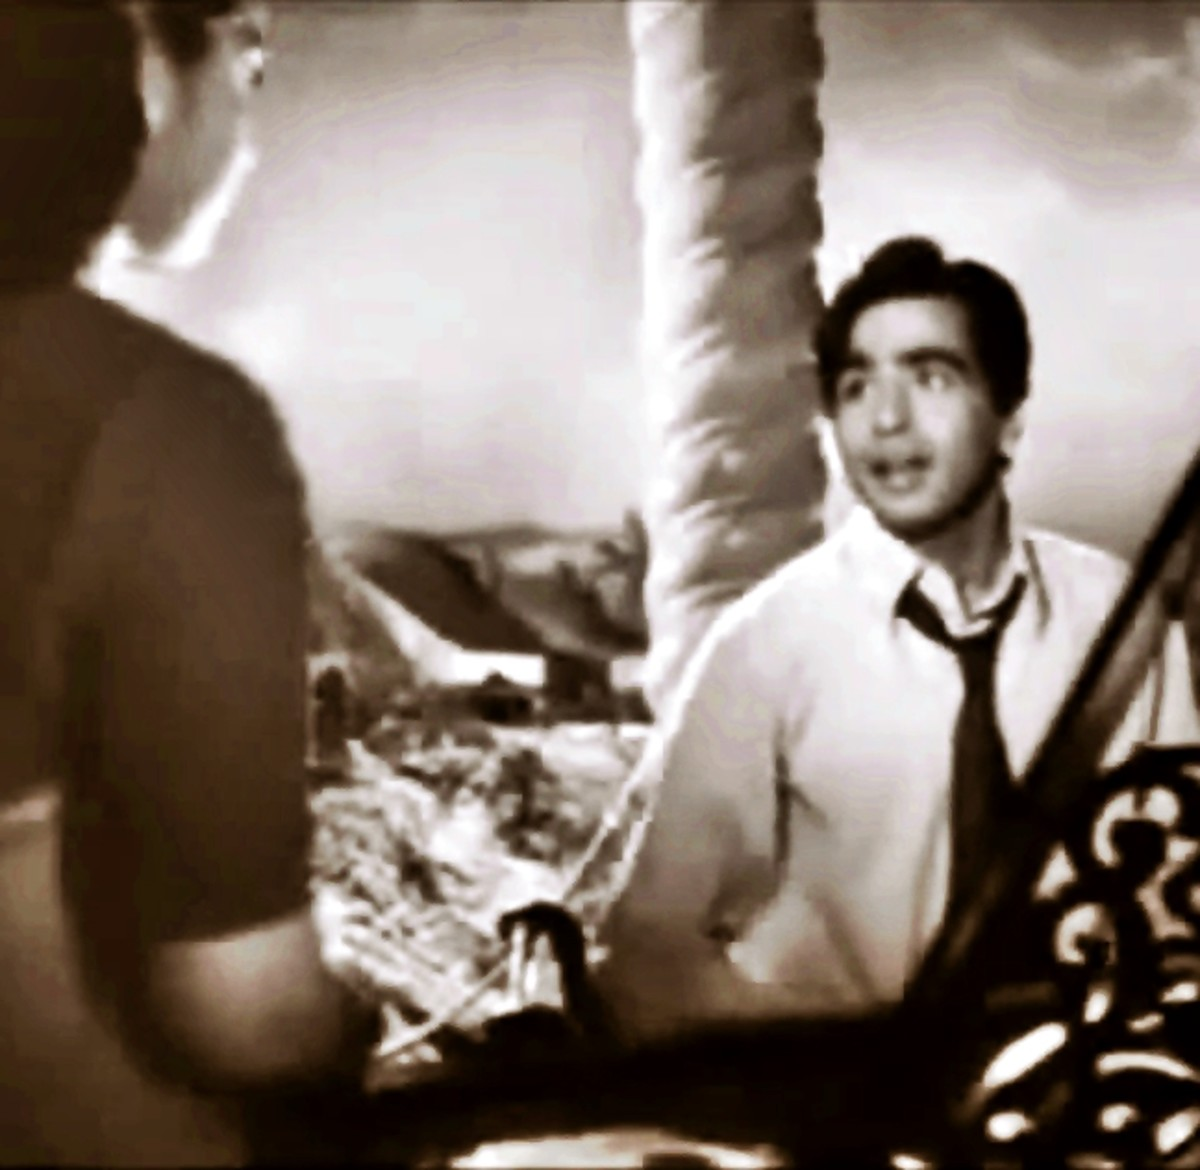 Dilip Kumar in BABUL - One of the greatest ever duet song of Bollywood by Shamshad Begum with Talat Mehmood